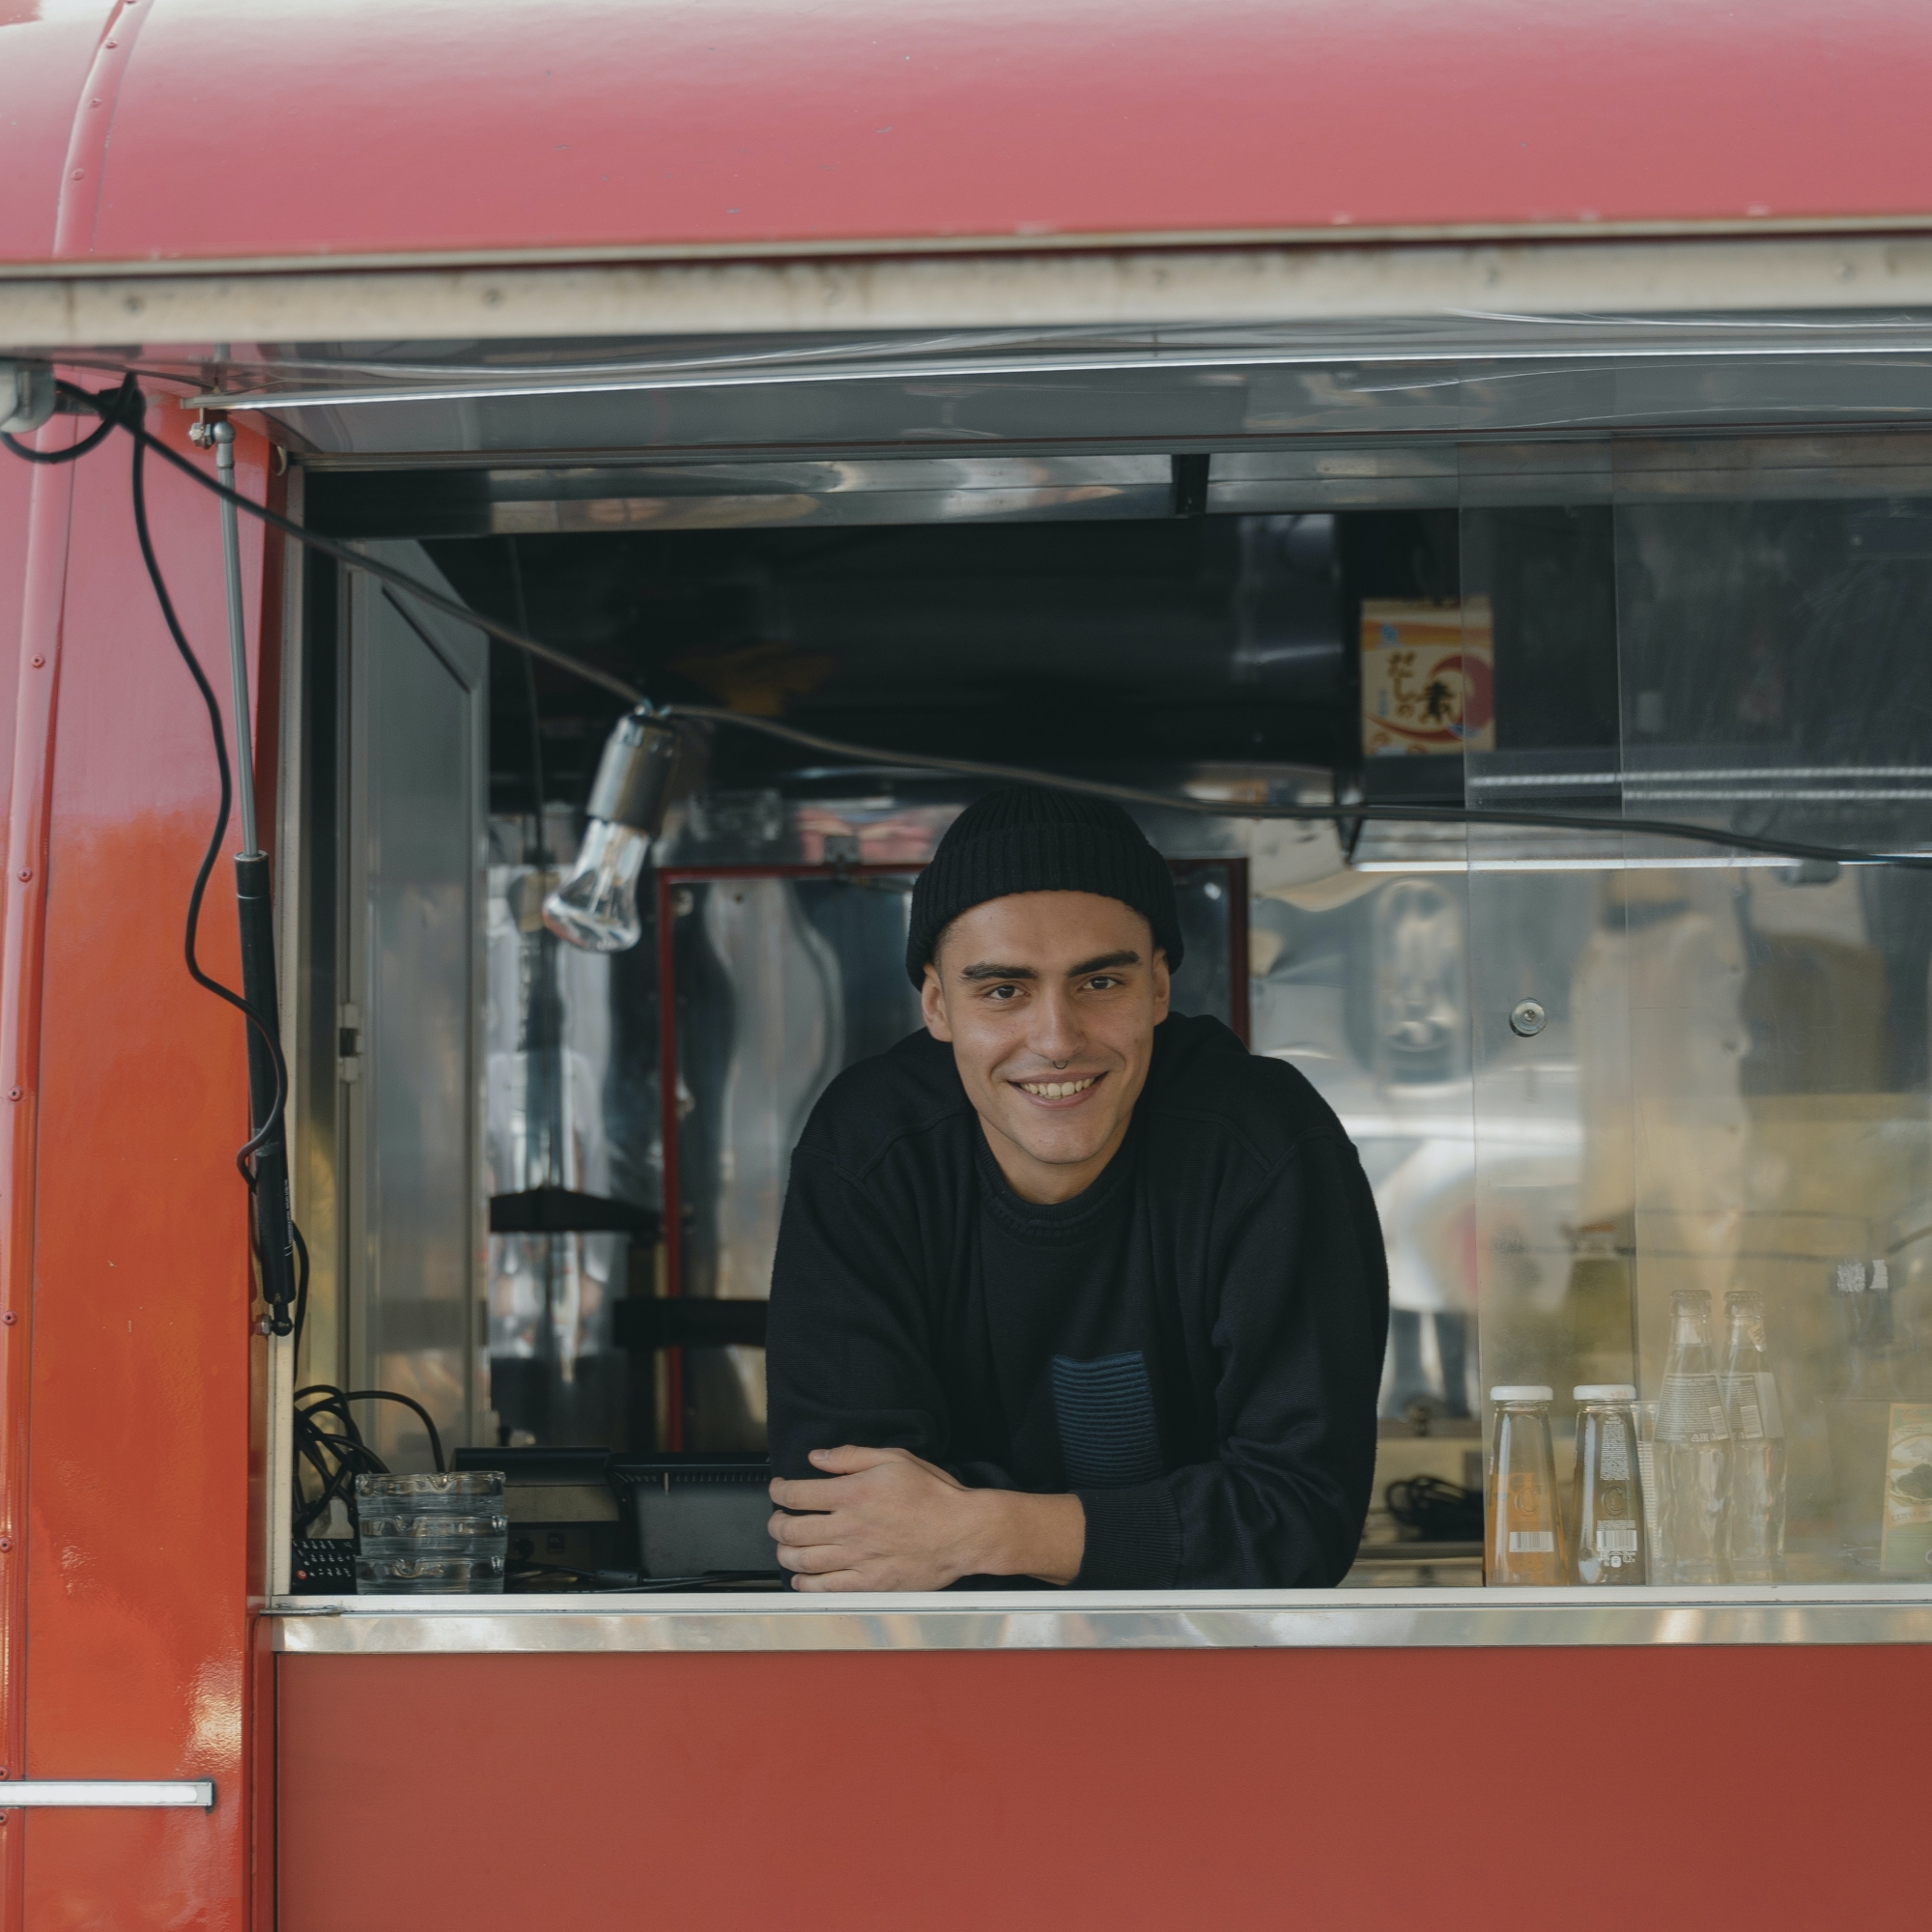 a smiling man leans out of the window of a food truck